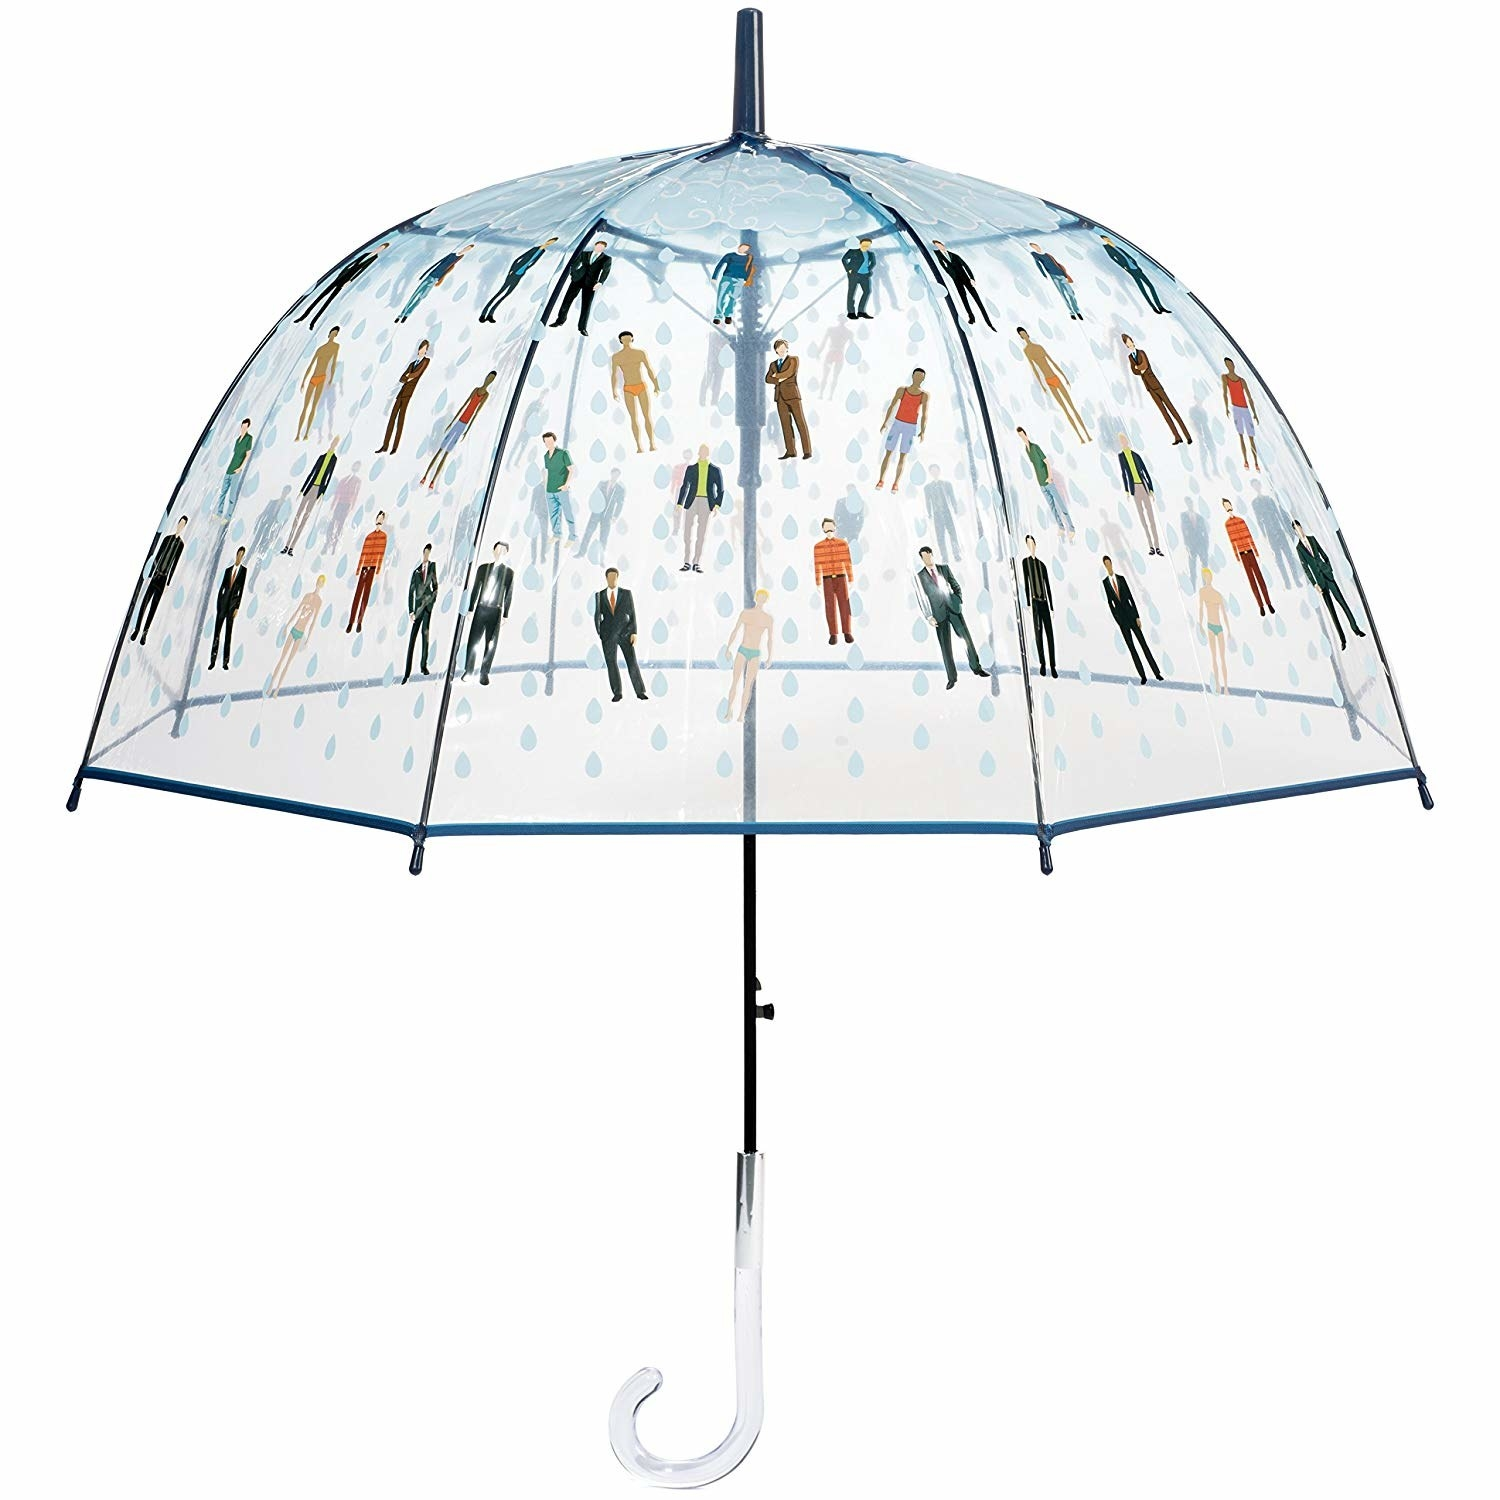 clear umbrella with men and rain on it